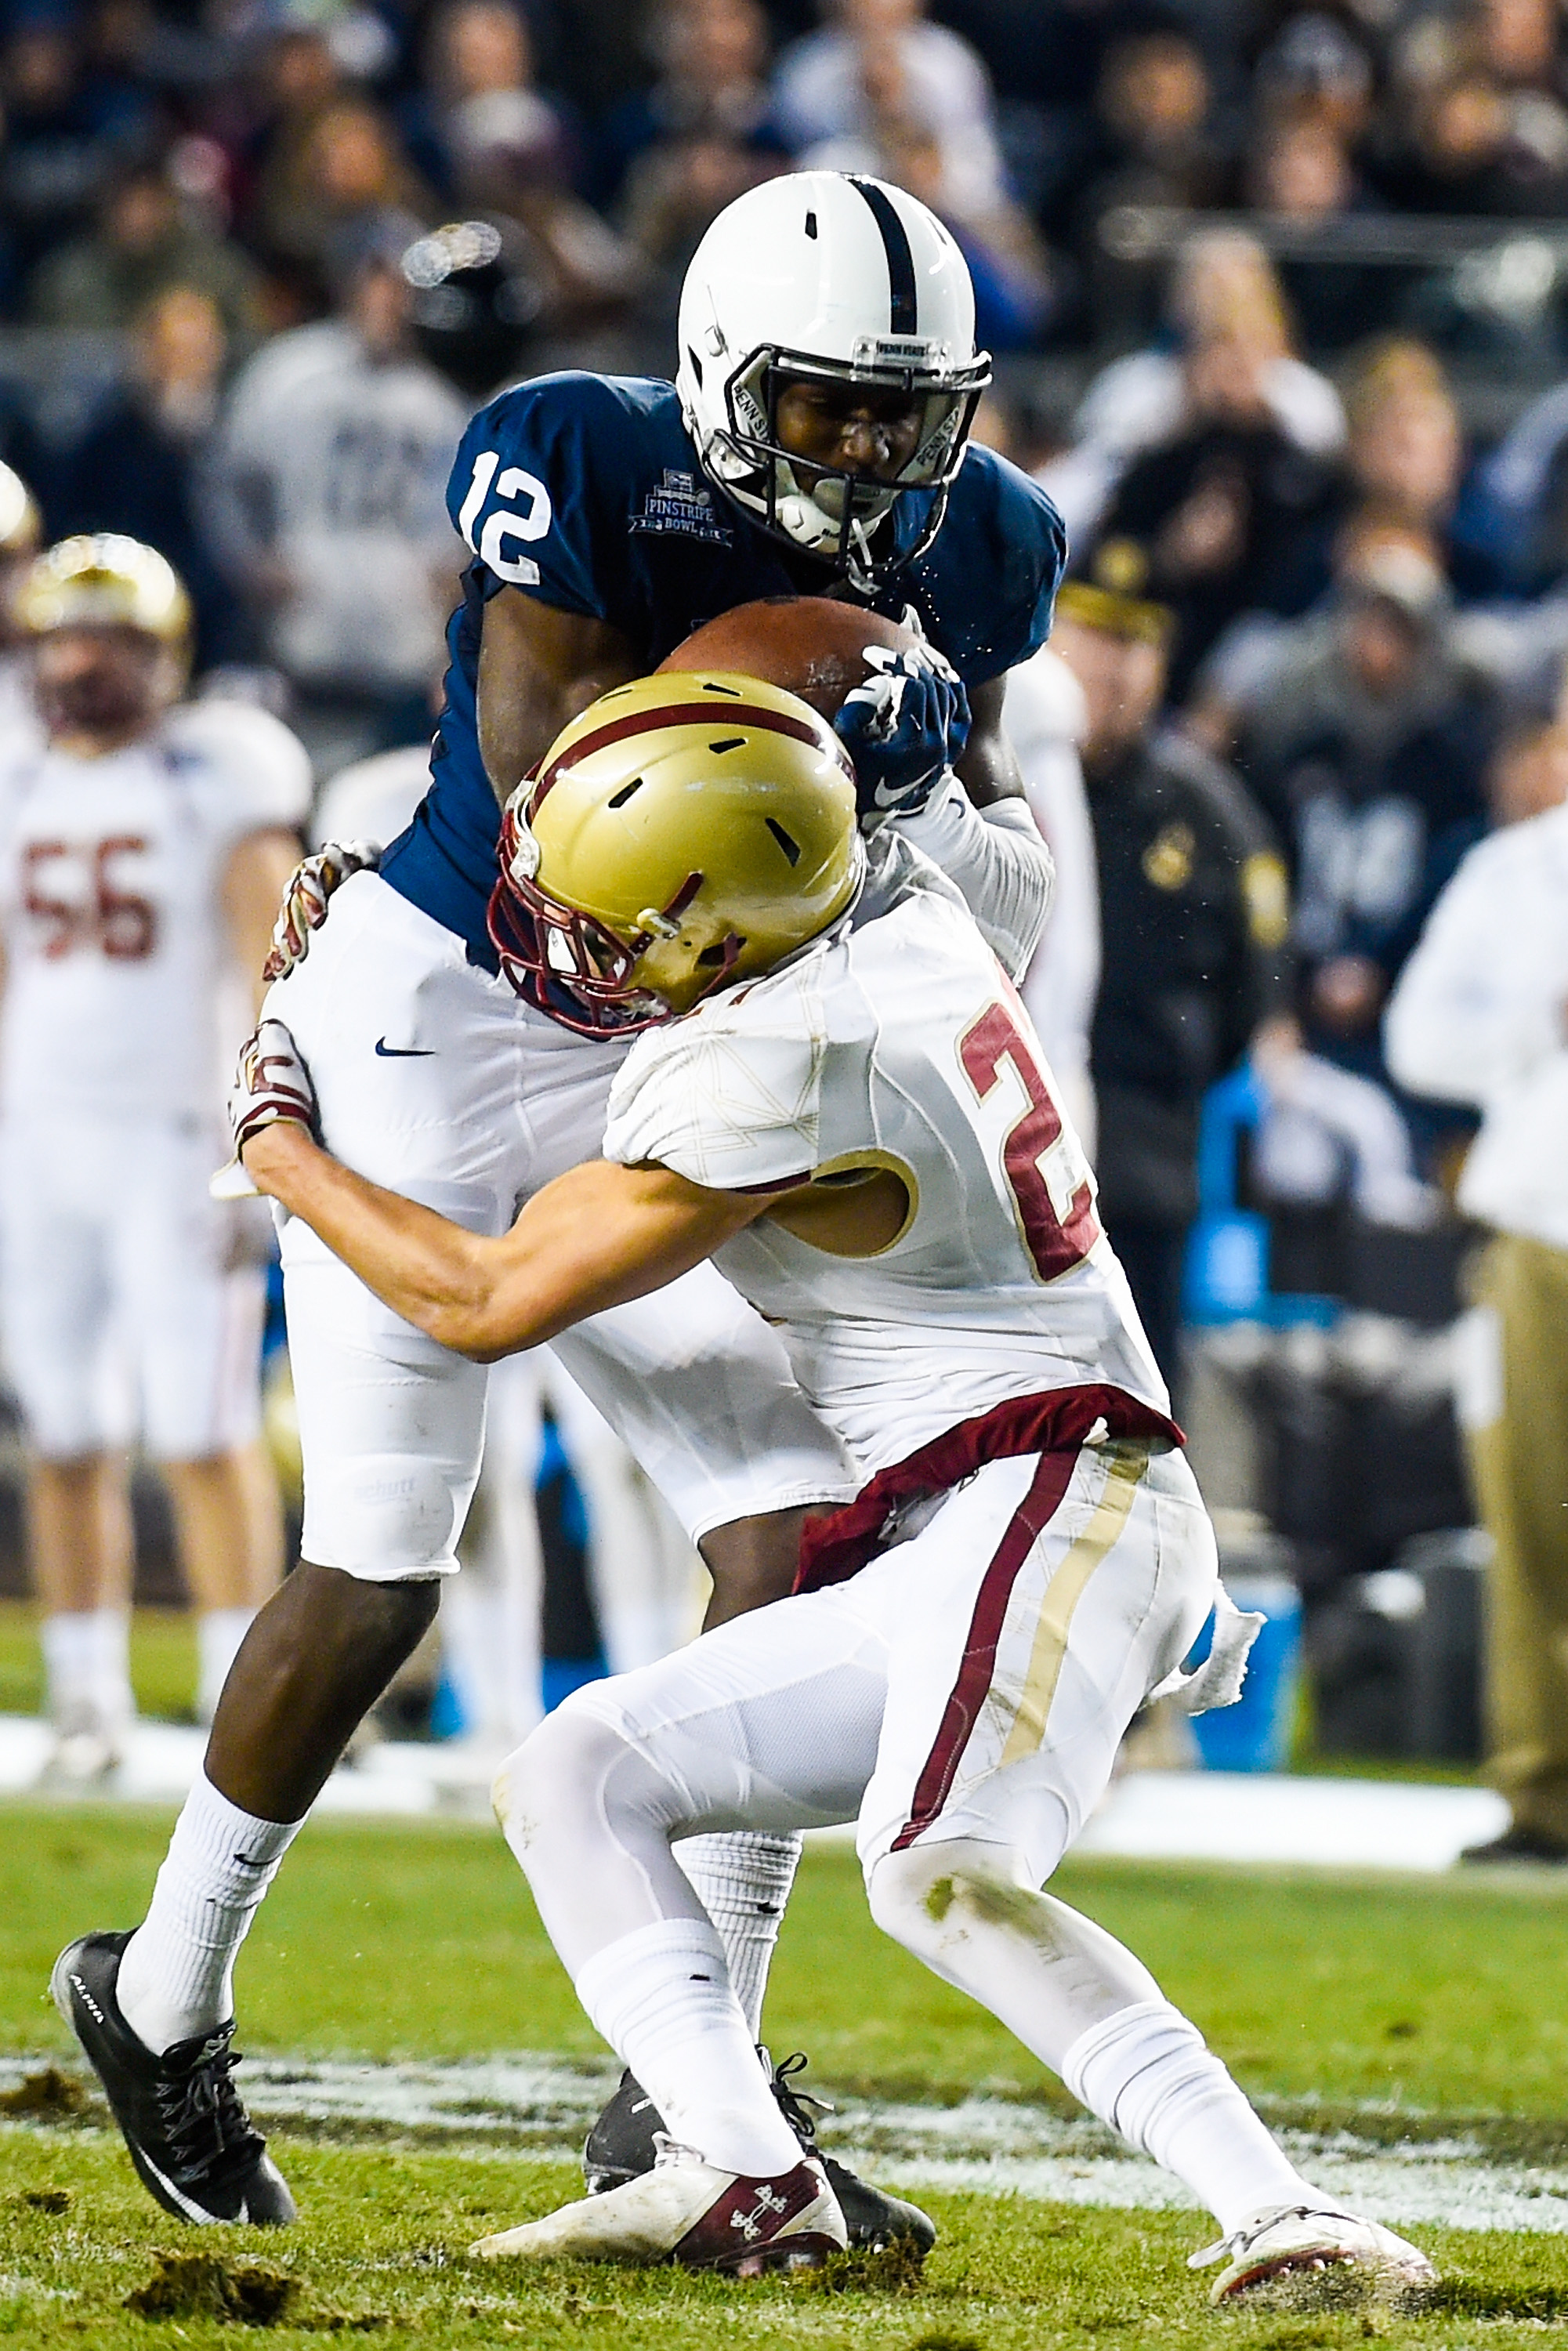 Justin Simmons #27 of the Boston College Eagles stops Chris Godwin #12 of the Penn State Nittany Lions in the first quarter of the 2014 New Era Pinstripe Bowl at Yankee Stadium on December 27, 2014 in the Bronx borough of New York City. (Photo by Alex Goodlett/Getty Images)